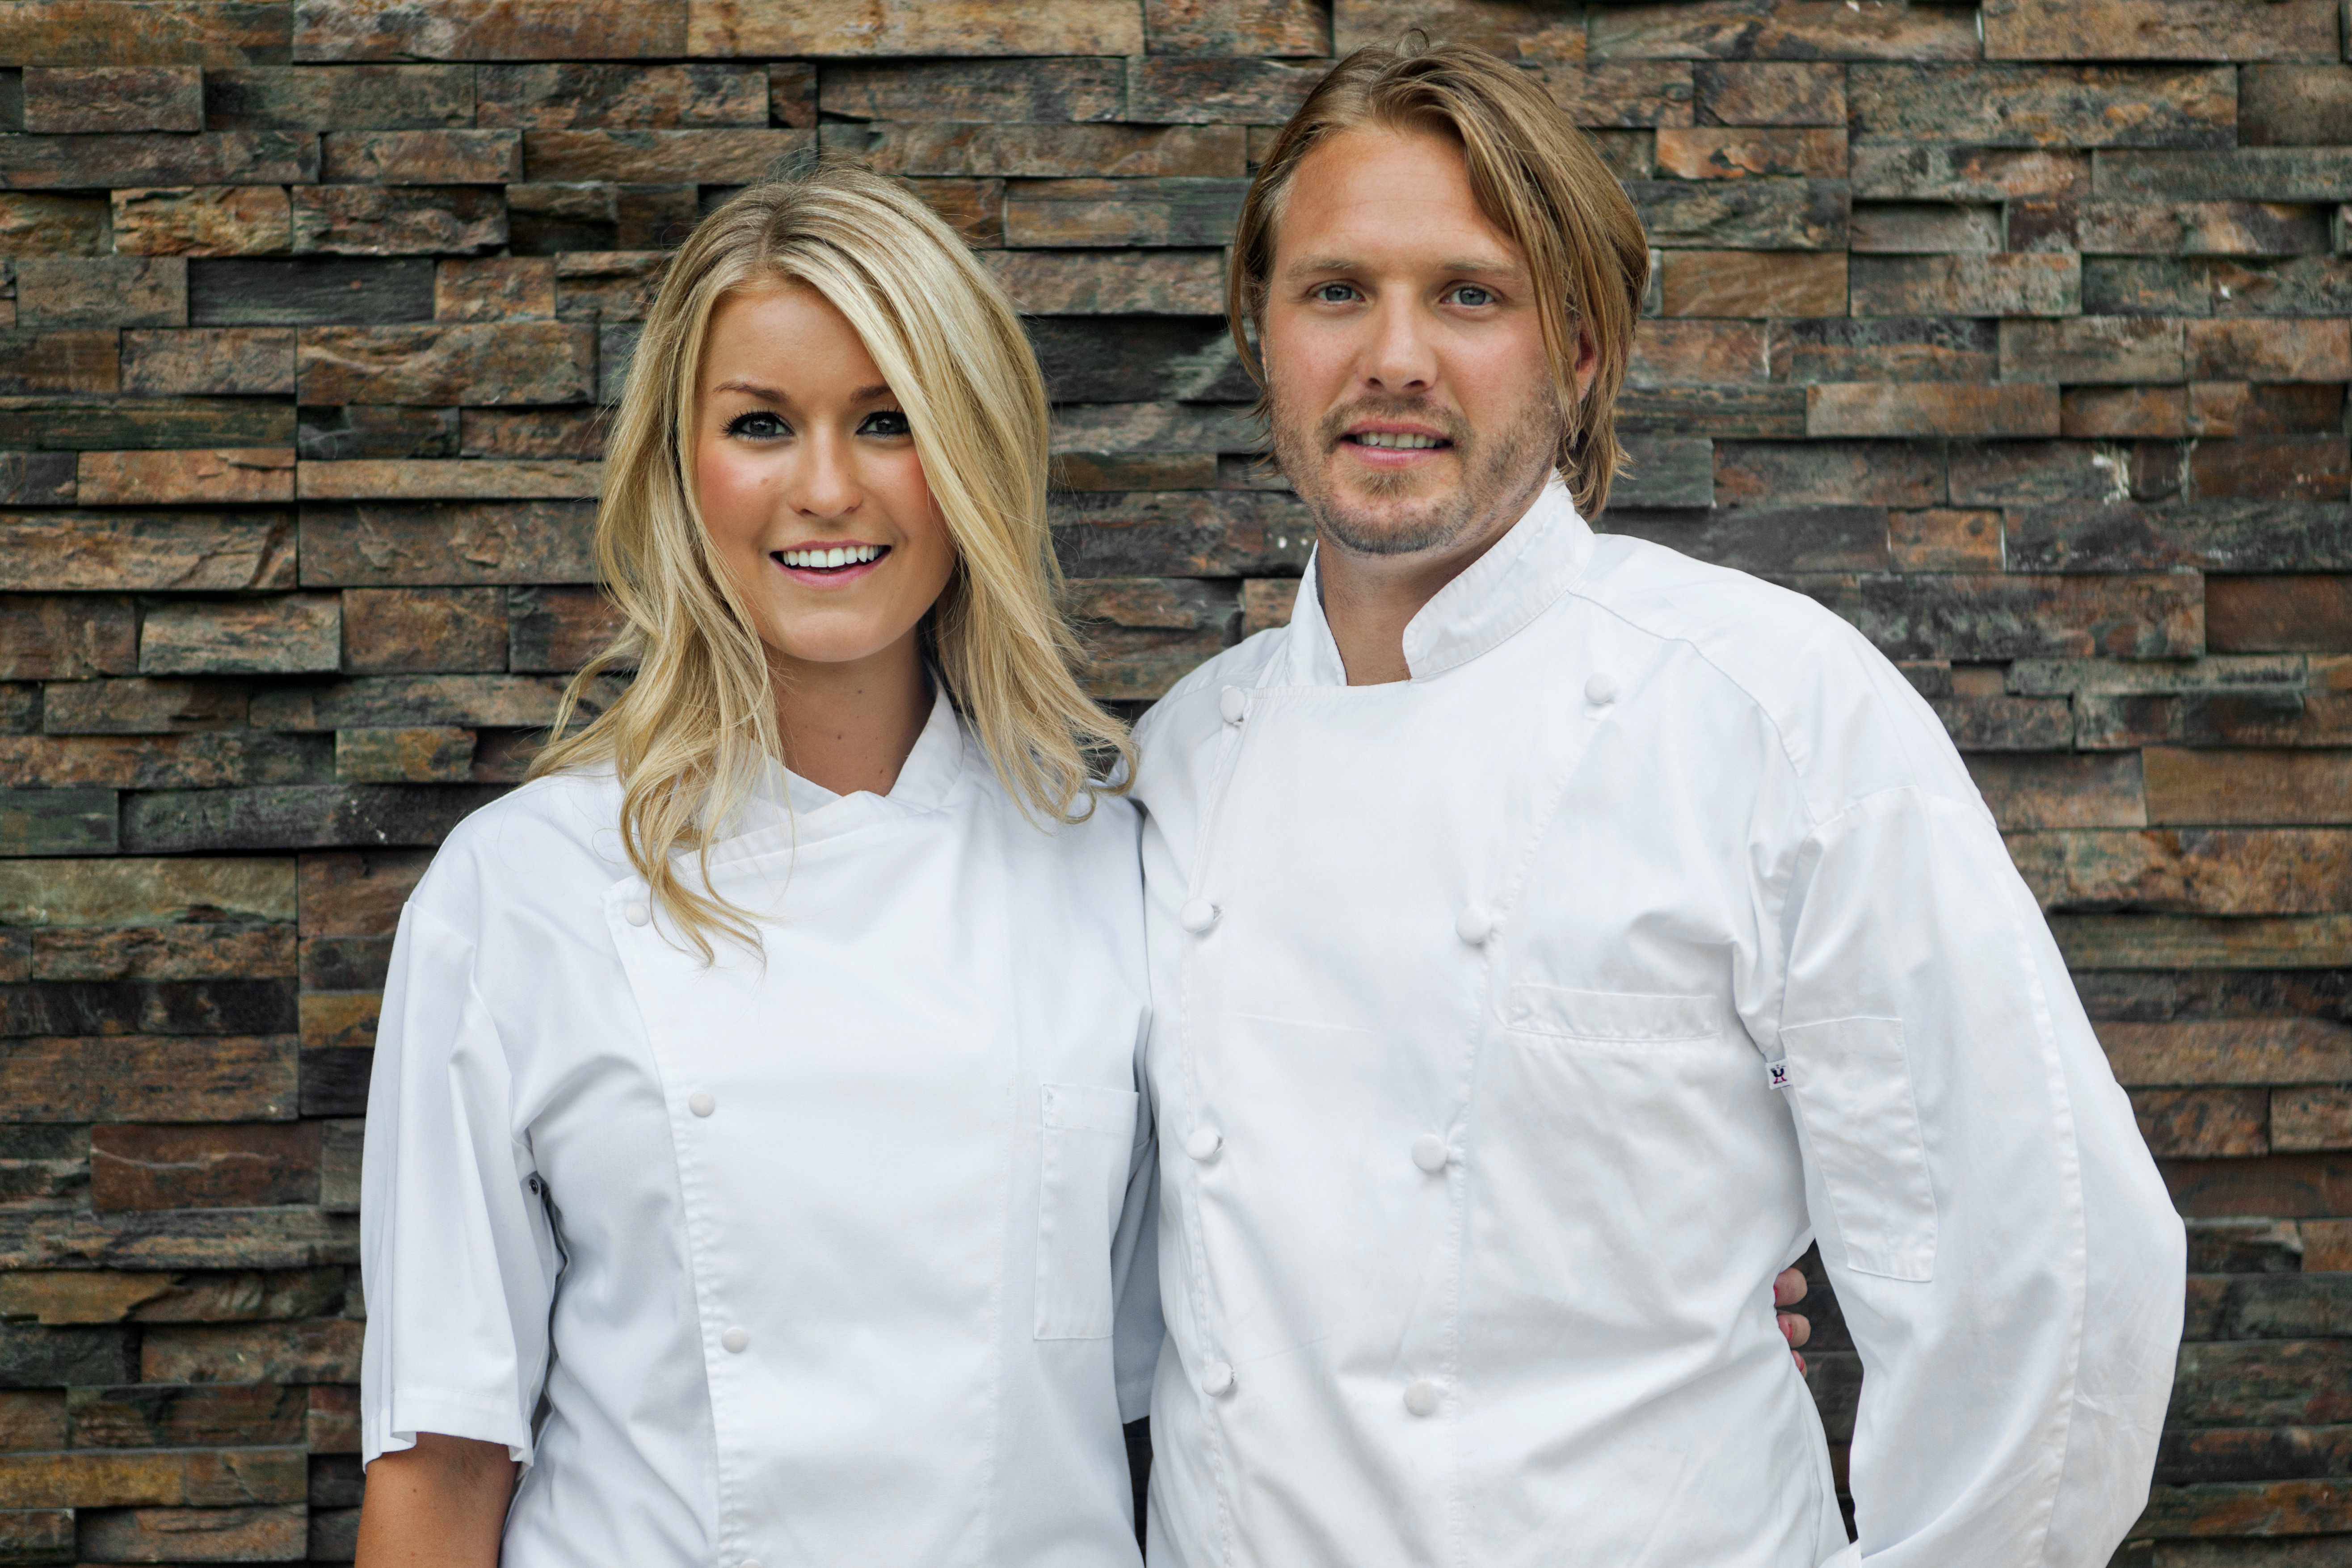 Jeff McGinnis and Janine Booth